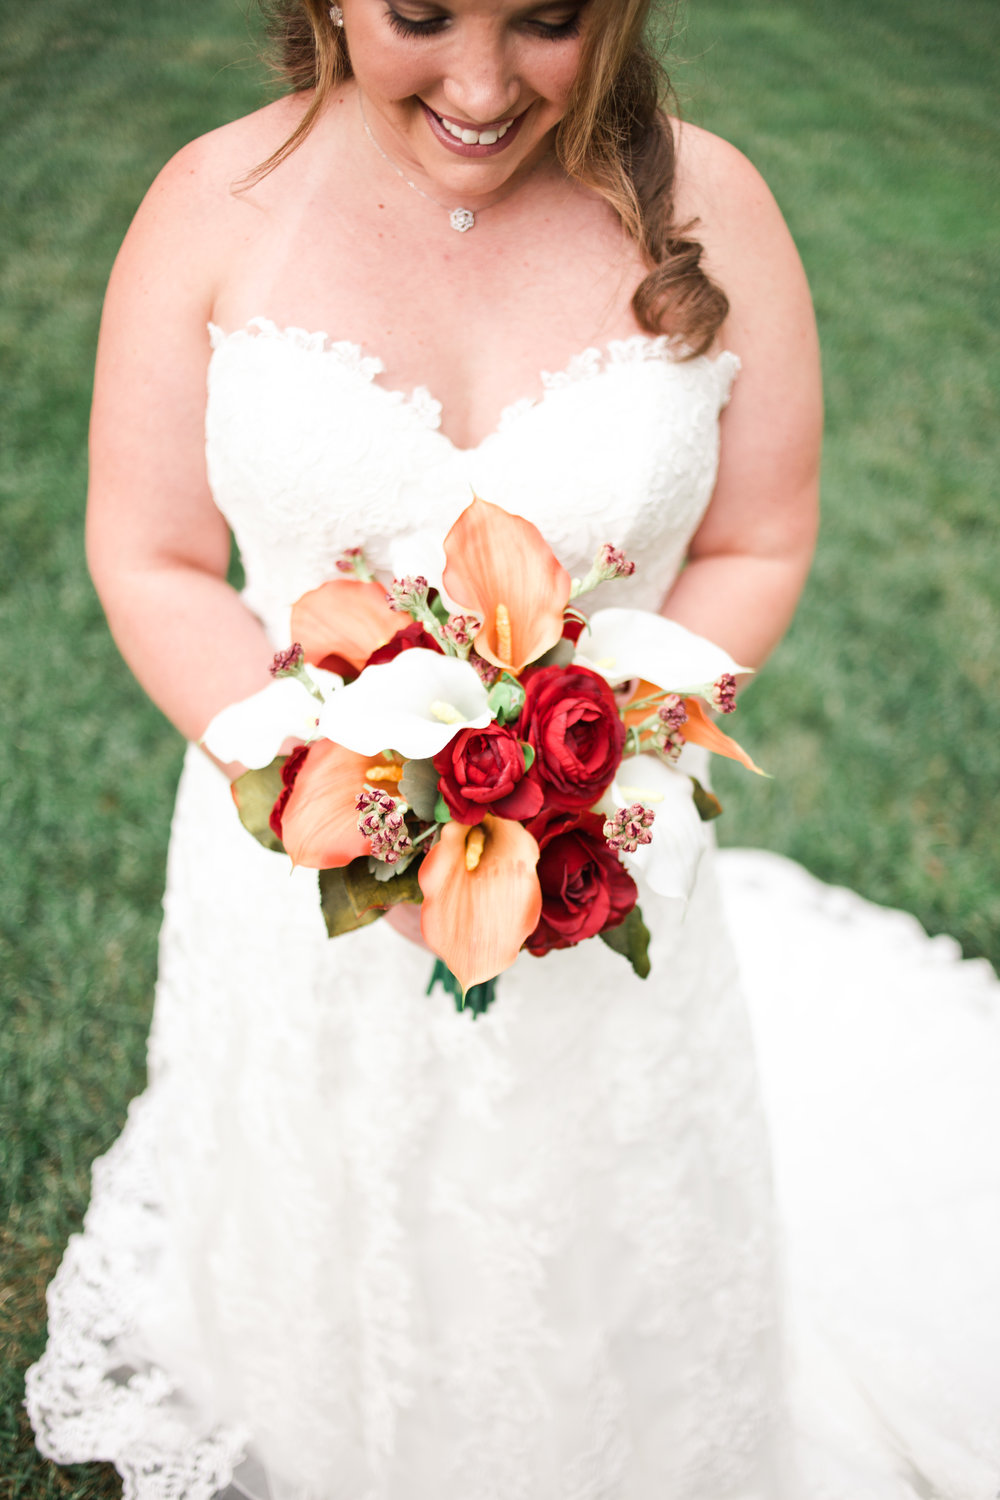 gabbie_bridal_poured_out_photography-10.jpg